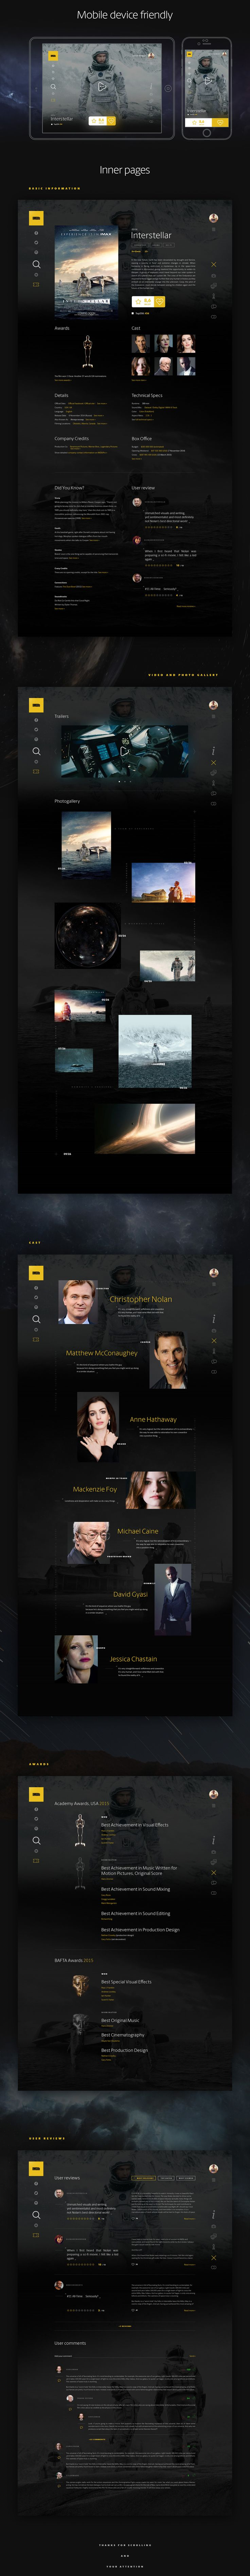 IMDB Concept 2016 (Movie detail page) on Behance